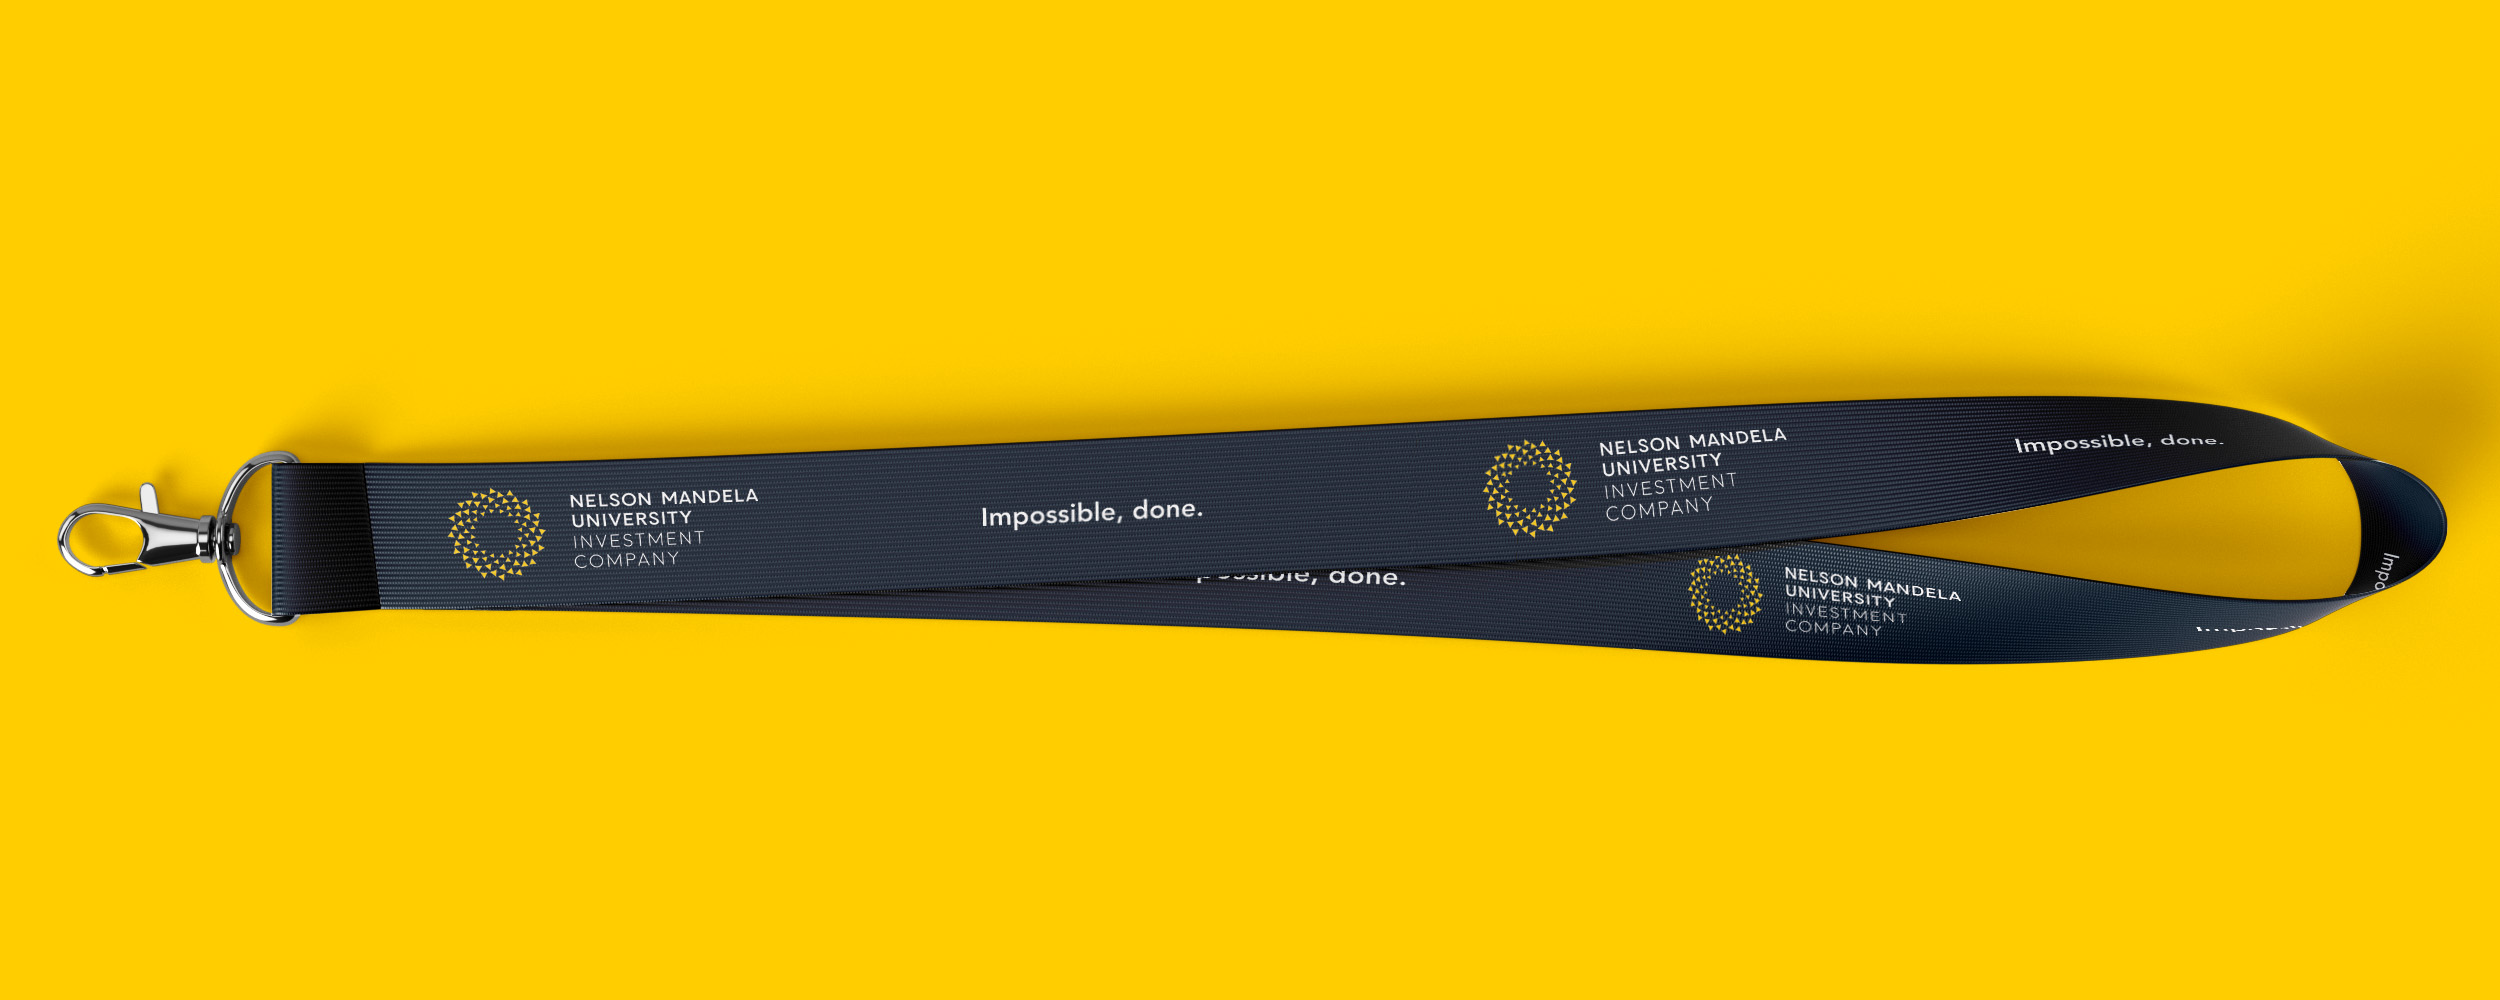 Creative Caterpillar client Nelson Mandela University Investment Company lanyard.